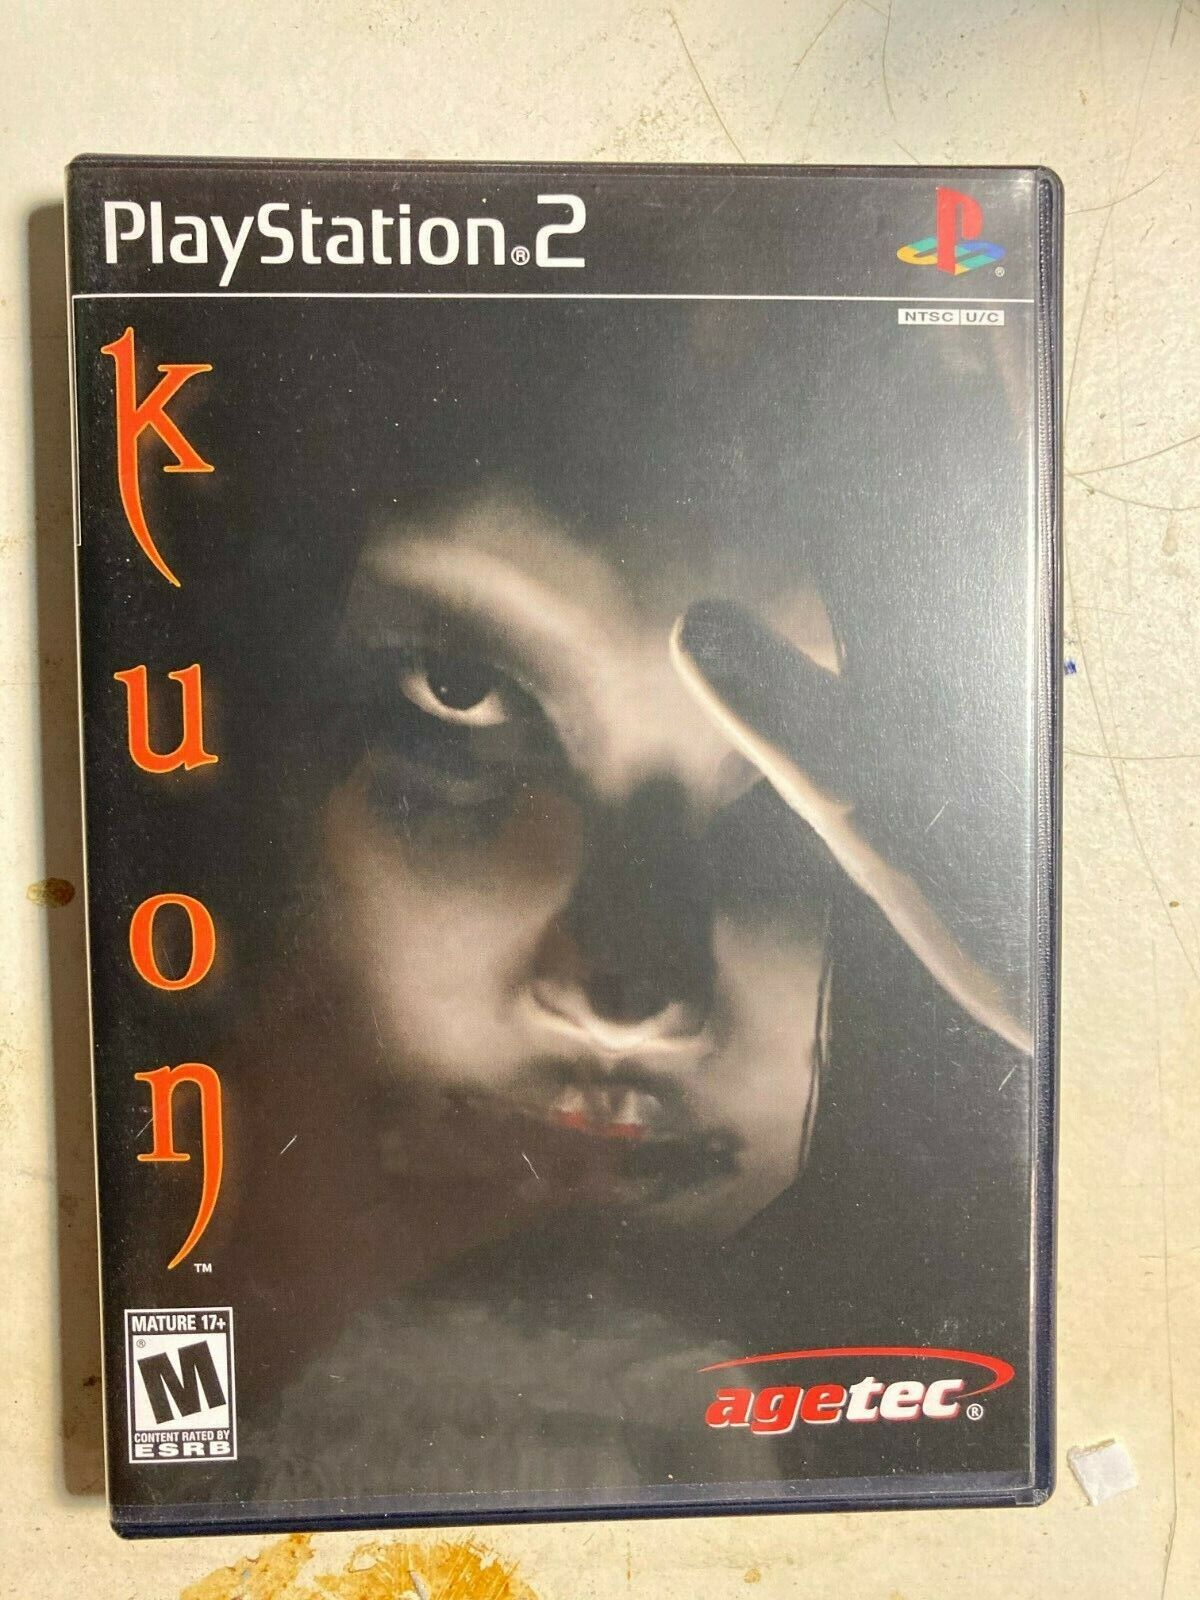 Kuon RARE Sony PlayStation 2, 2004 VERY GOOD Condition, AGETEC, FROM SOFTWARE - $650.00